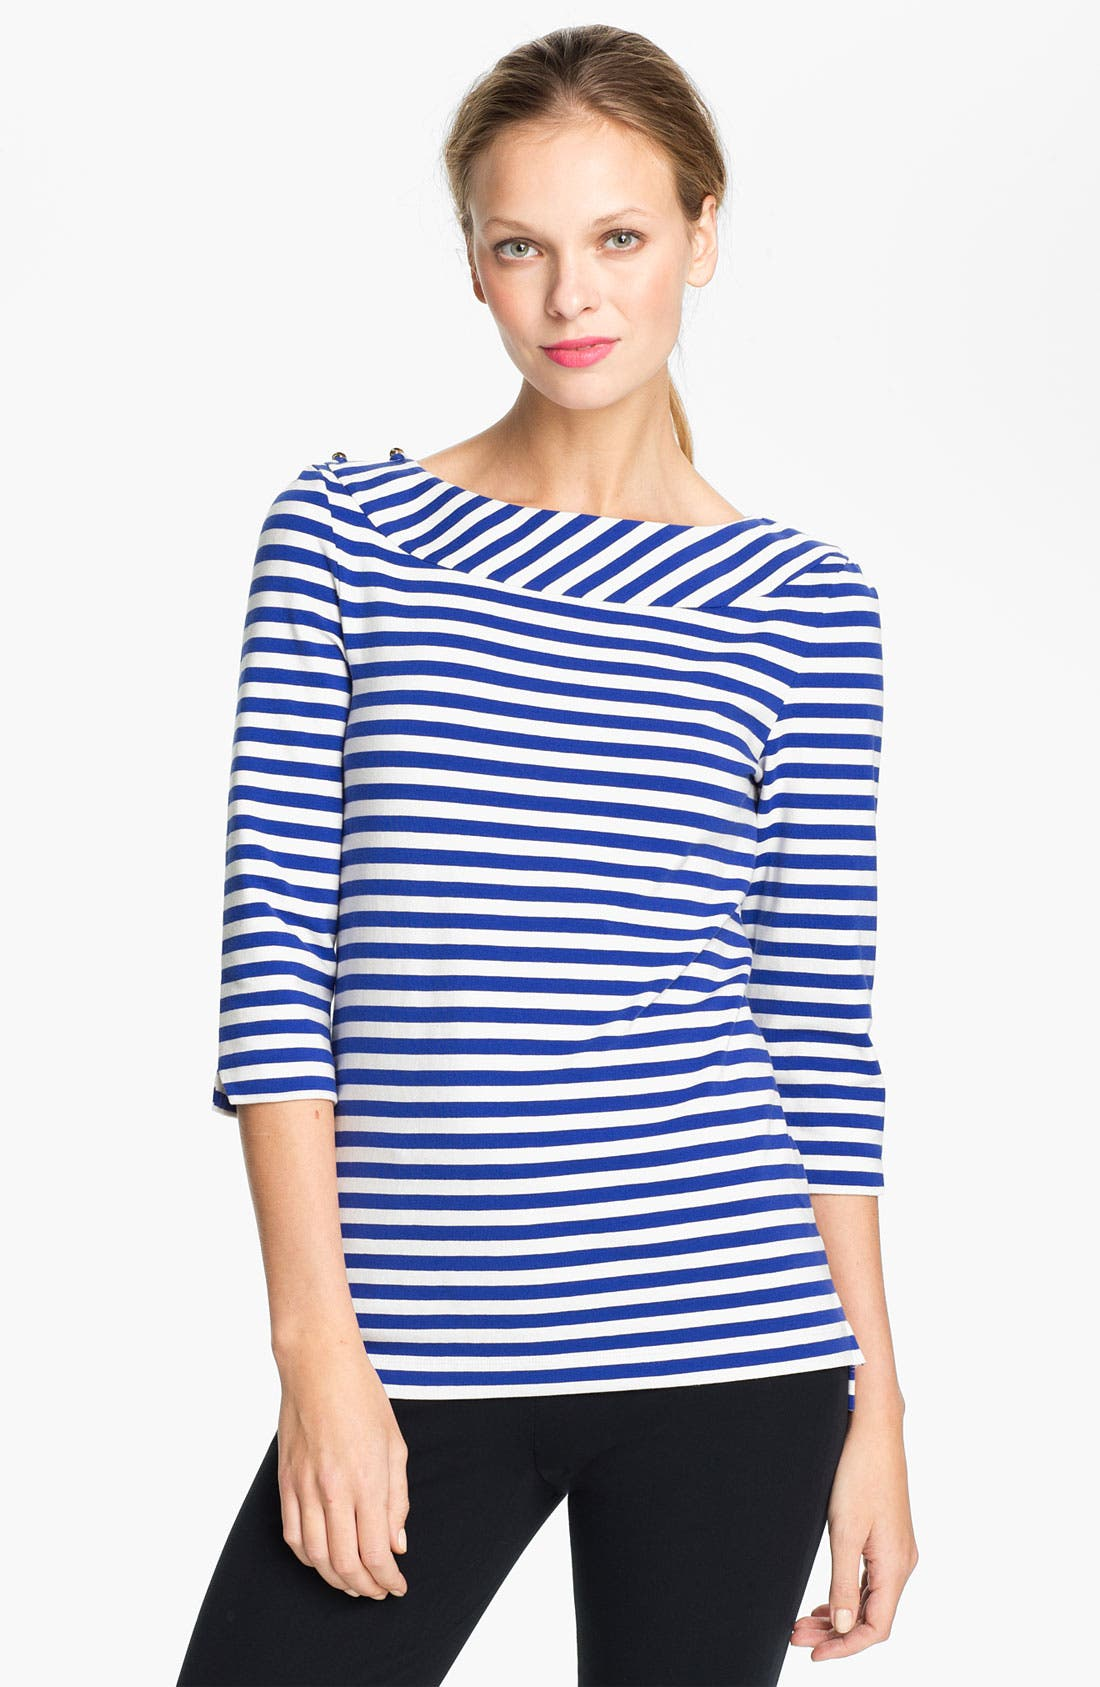 Main Image - kate spade new york 'shantie' stripe top